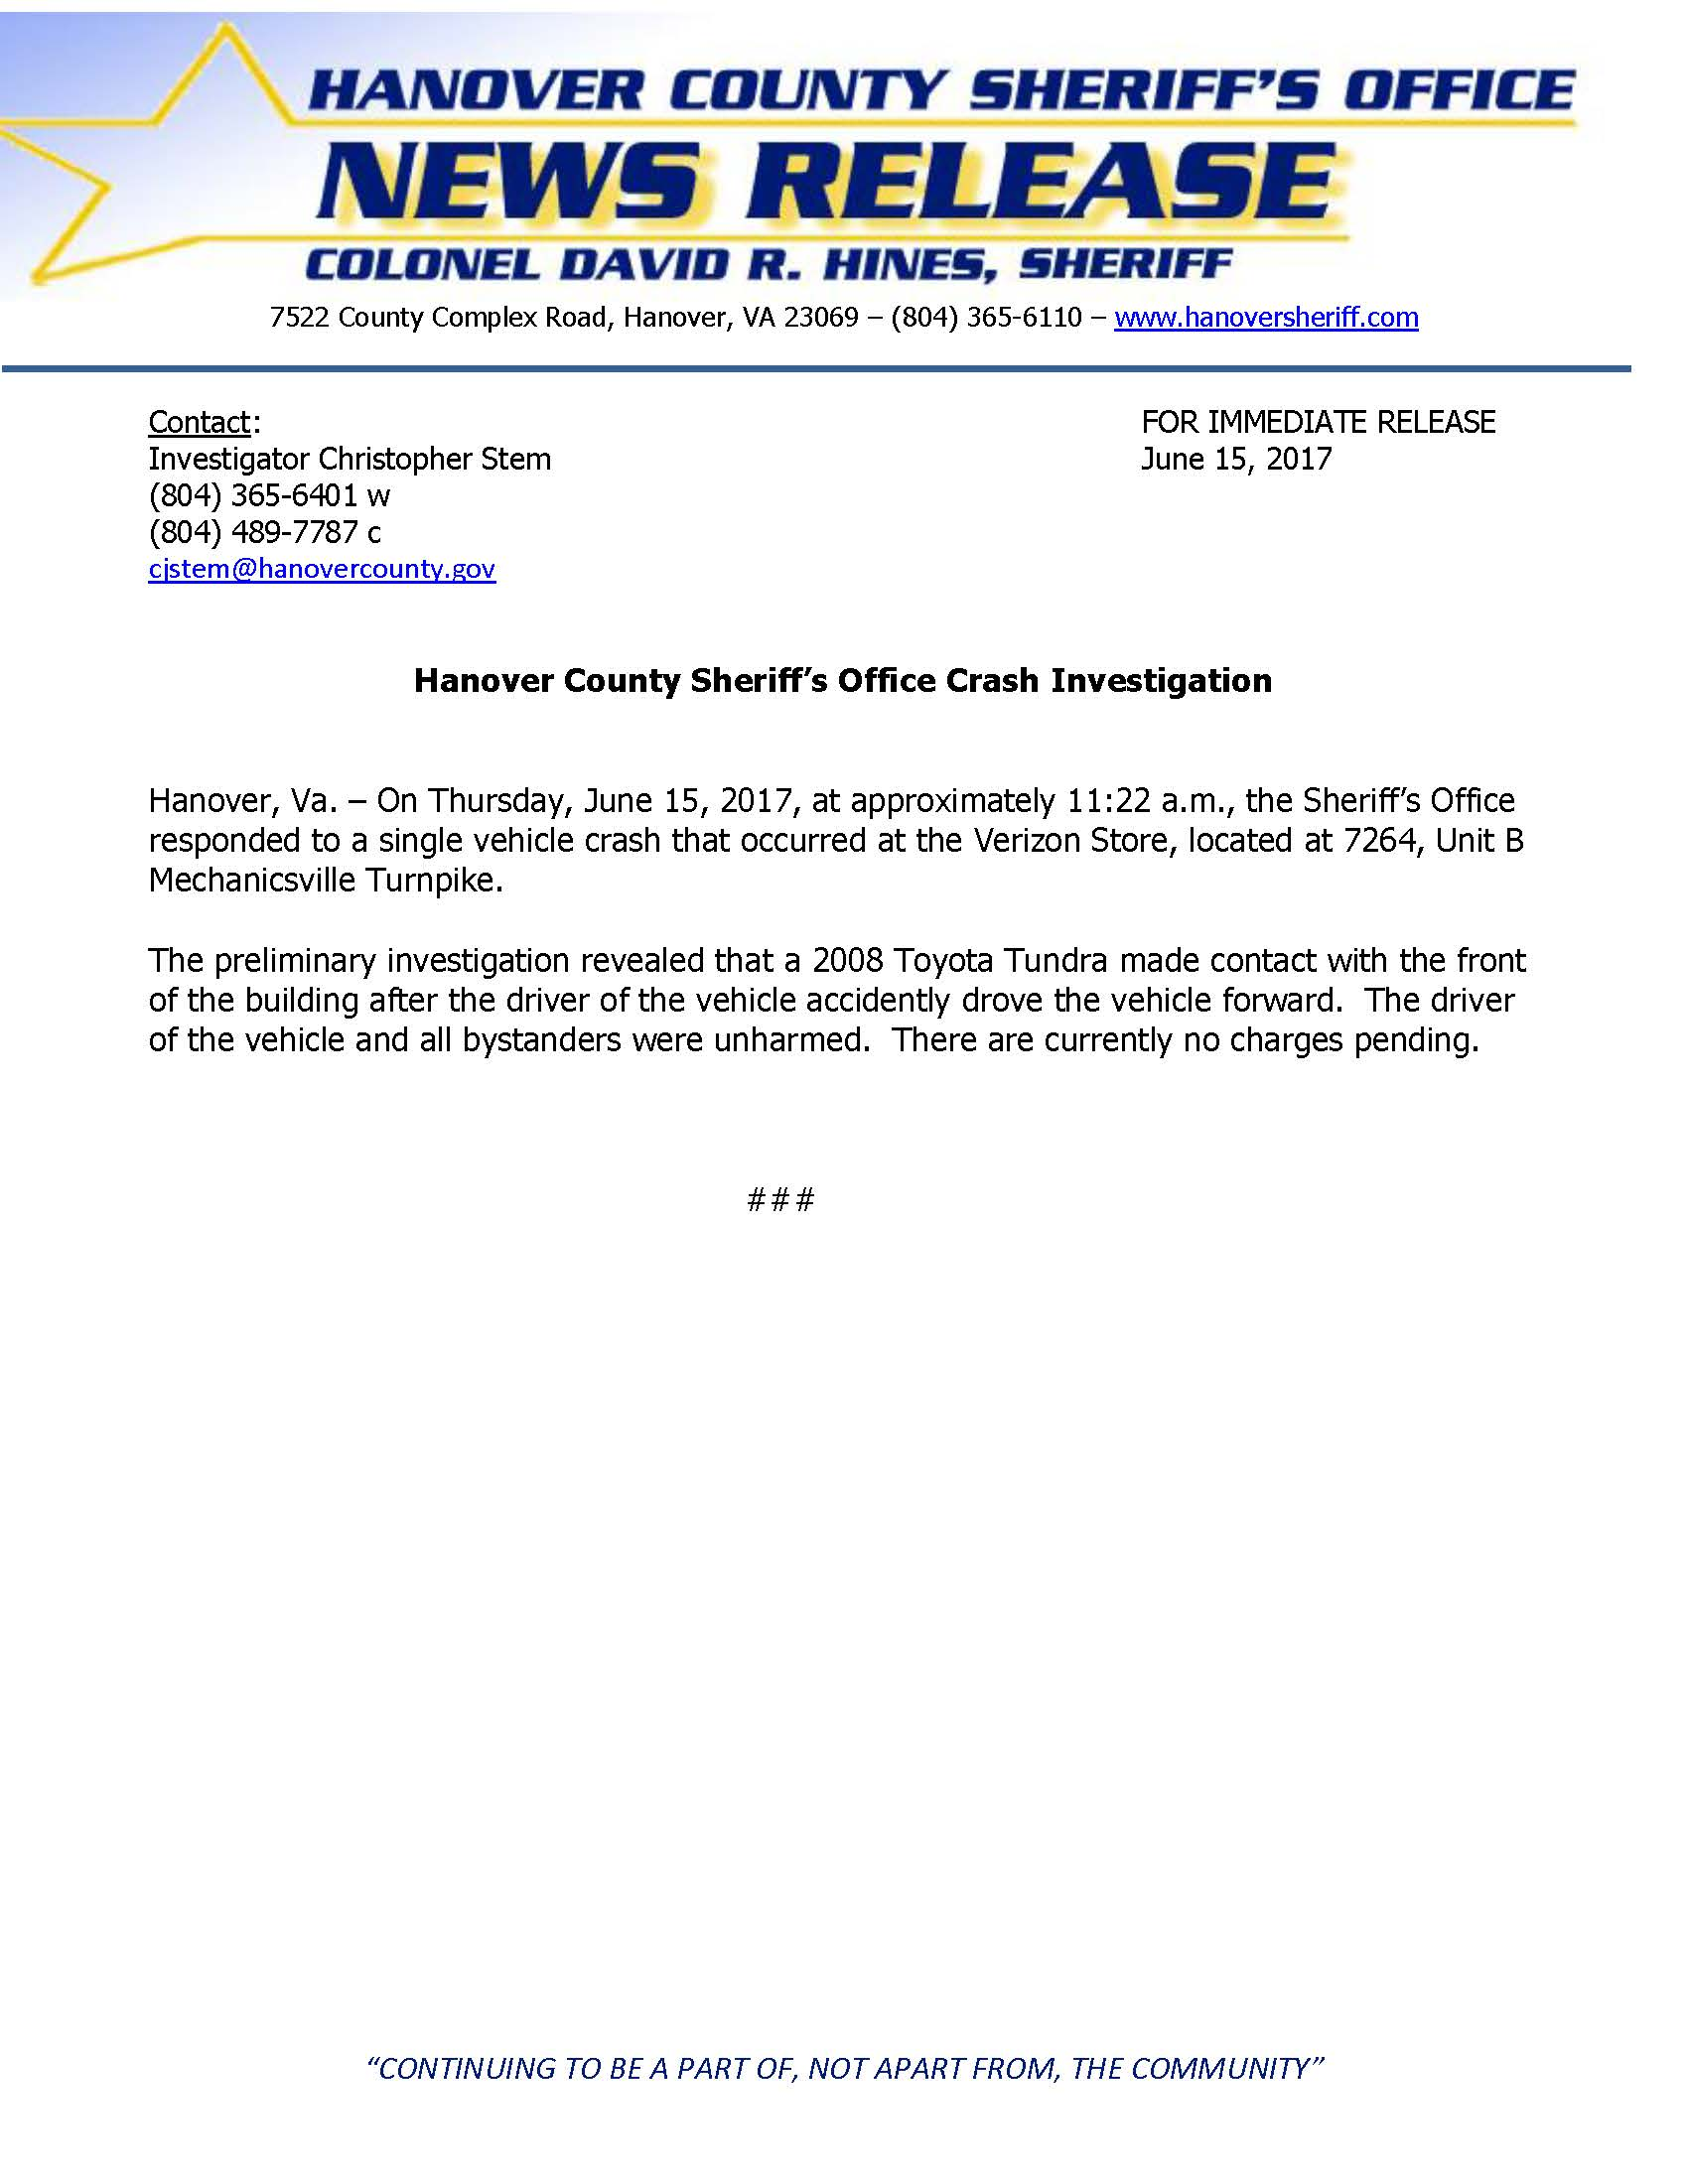 HCSO - Crash Investigation- Mechanicsville Turnpike